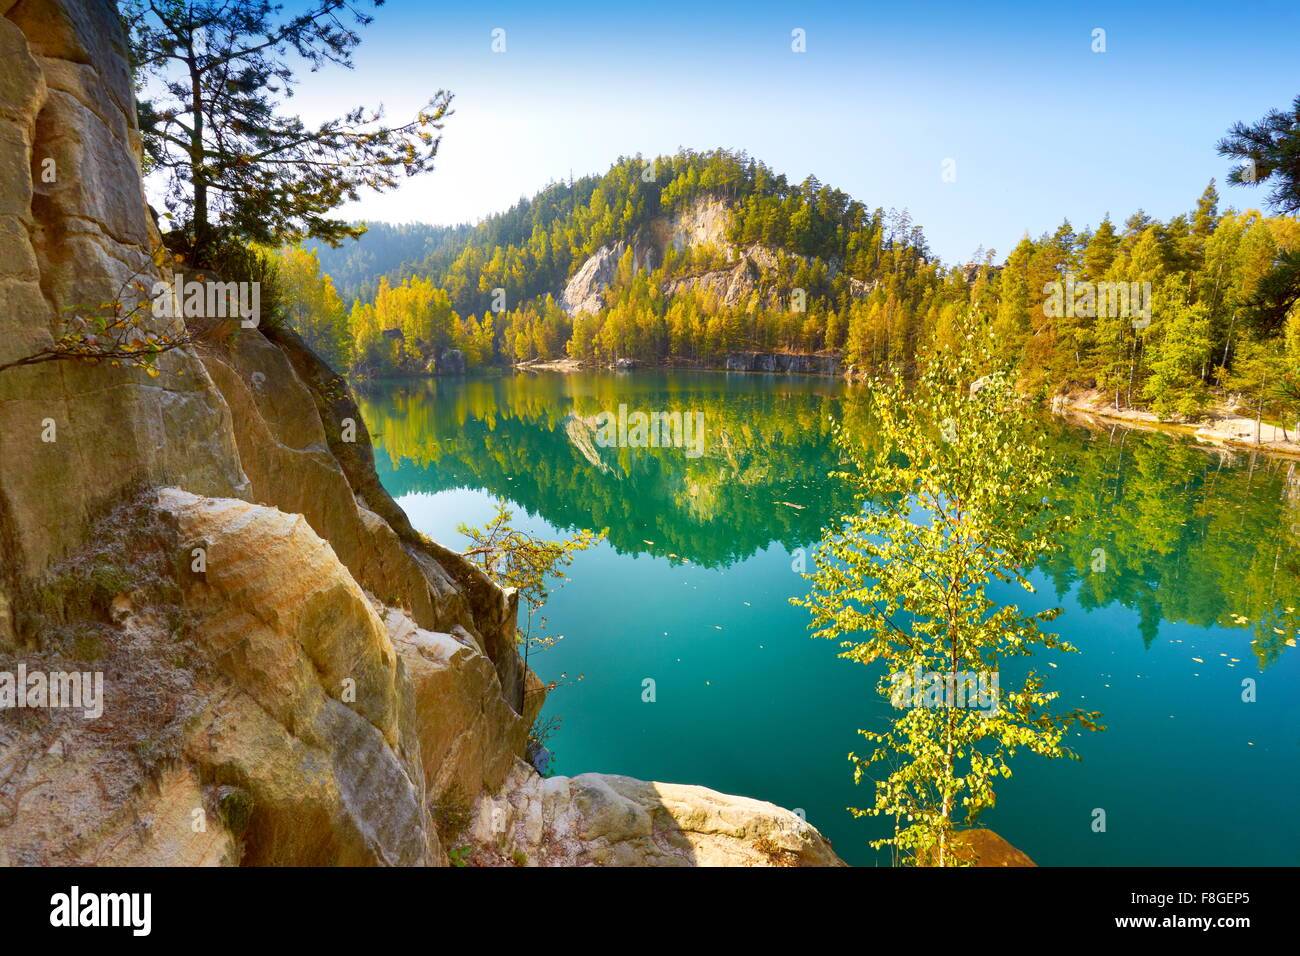 Adrspach Lake Czech Republic Stock Photo Royalty Free